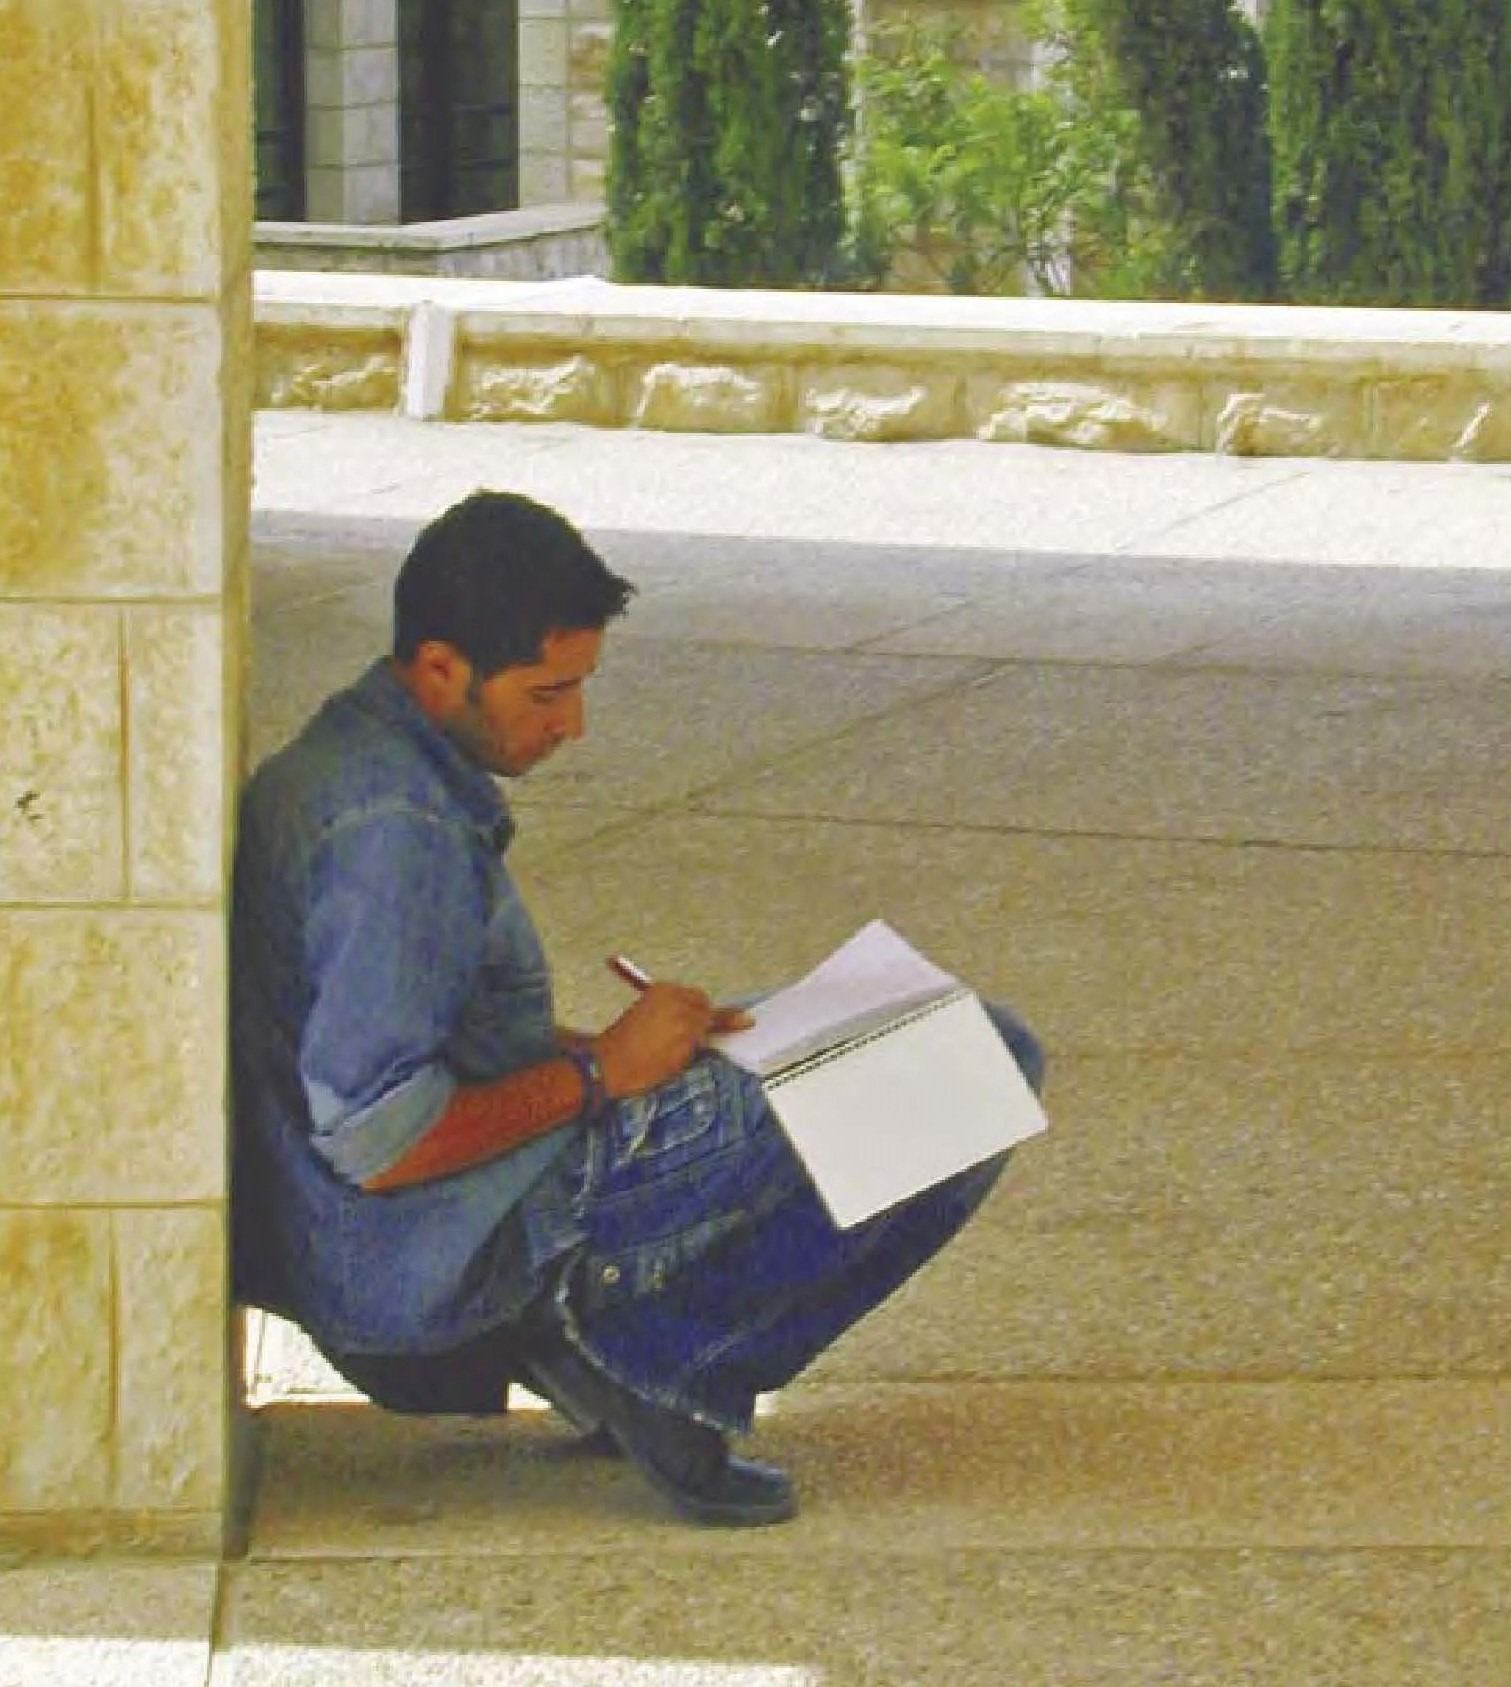 Palestinian student writing in notebook